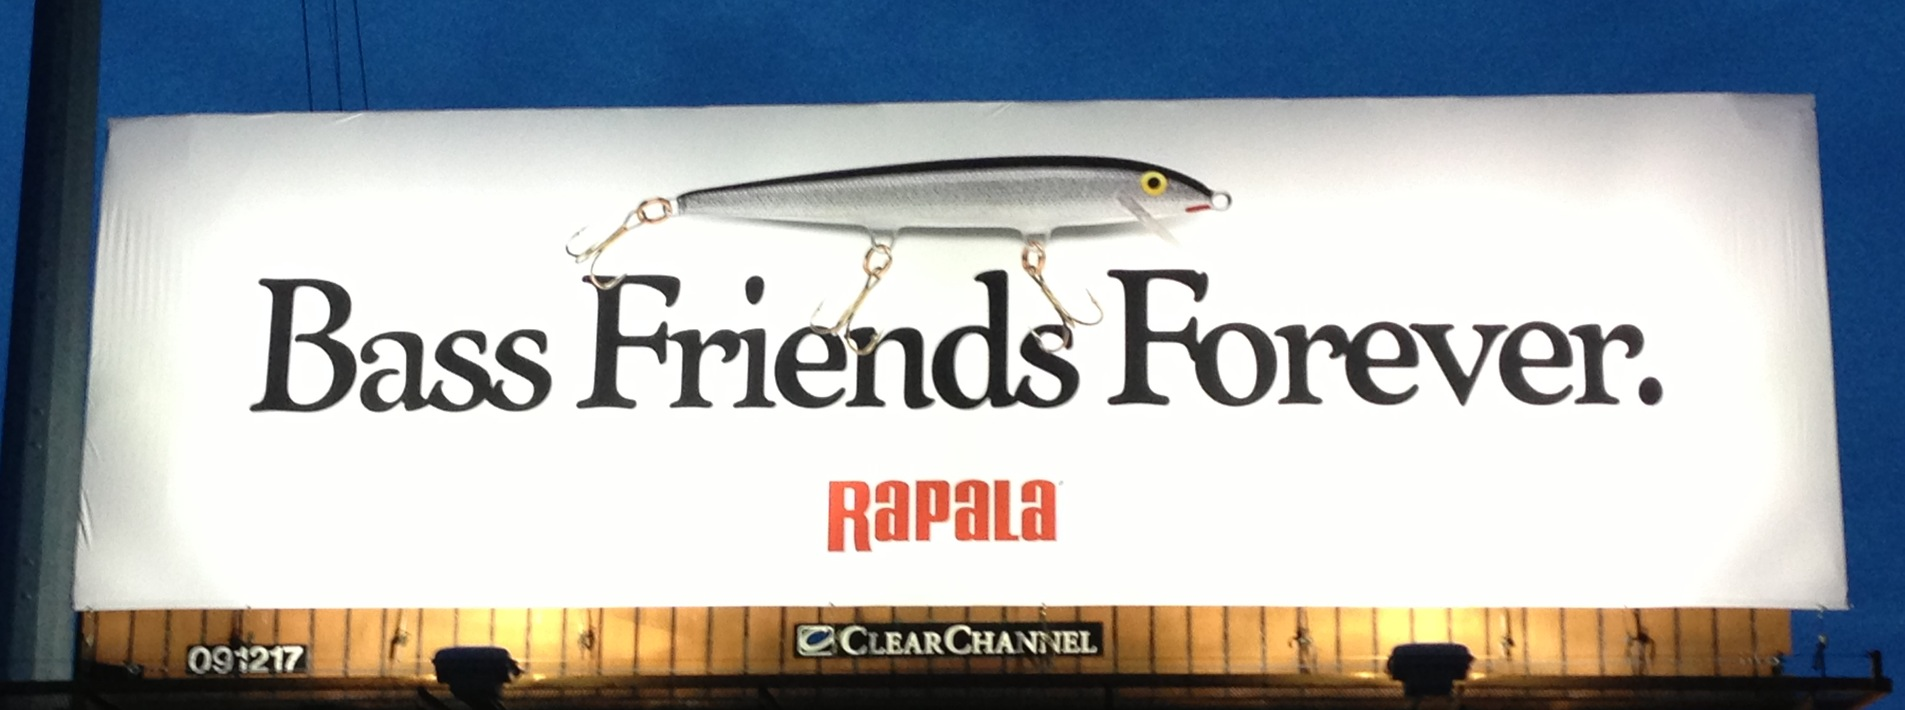 "Billboard with a fish pun, ""Bass Friends Forever"""